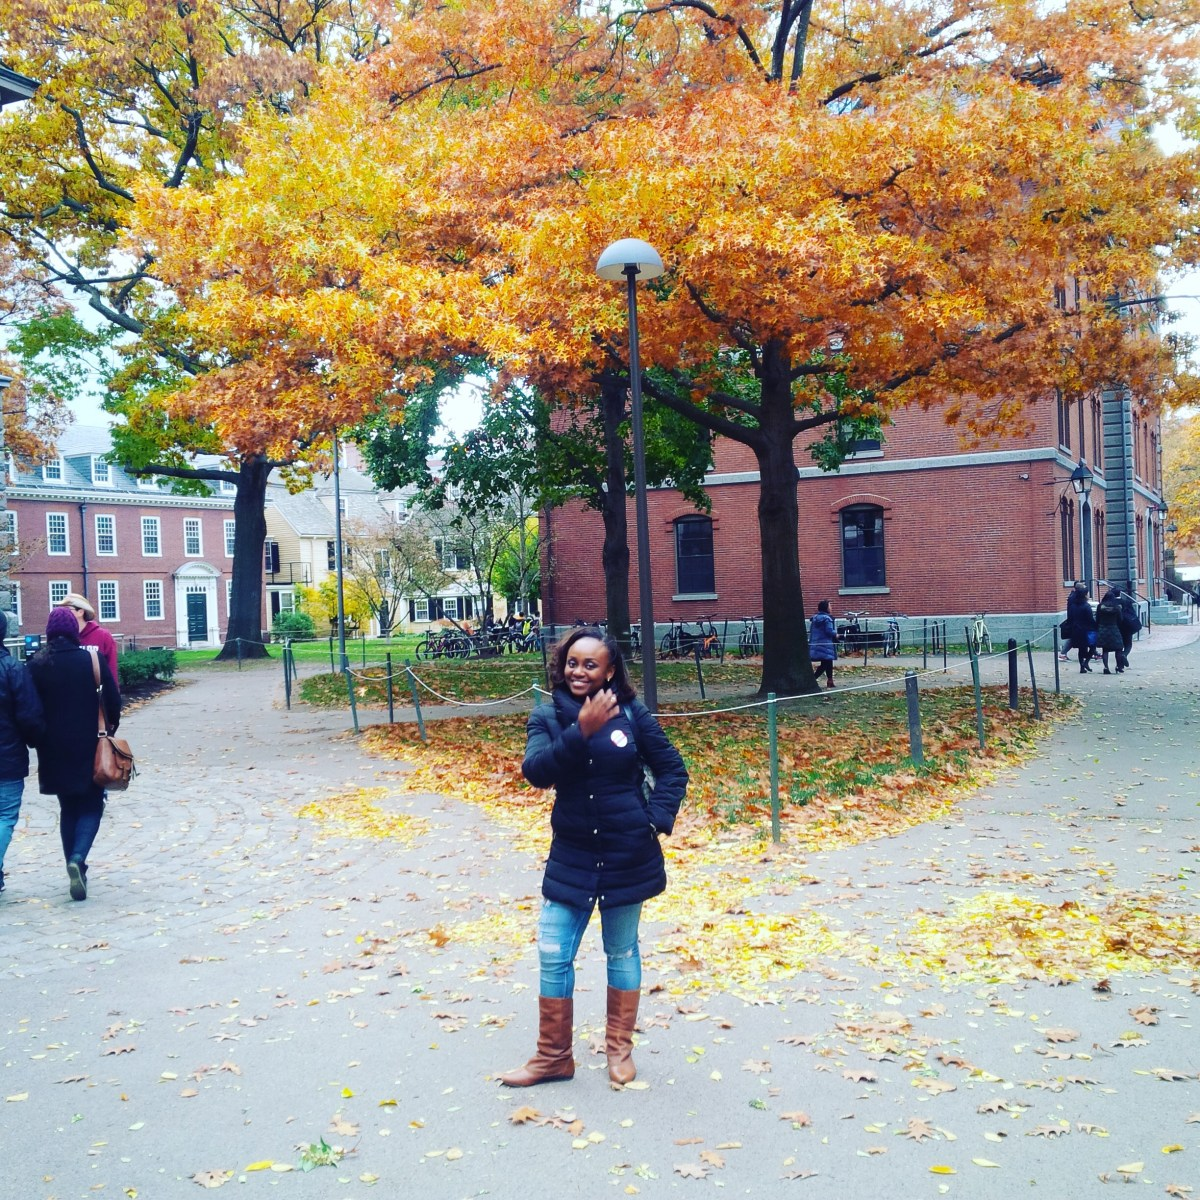 8 Interesting Facts I Discovered About Harvard University